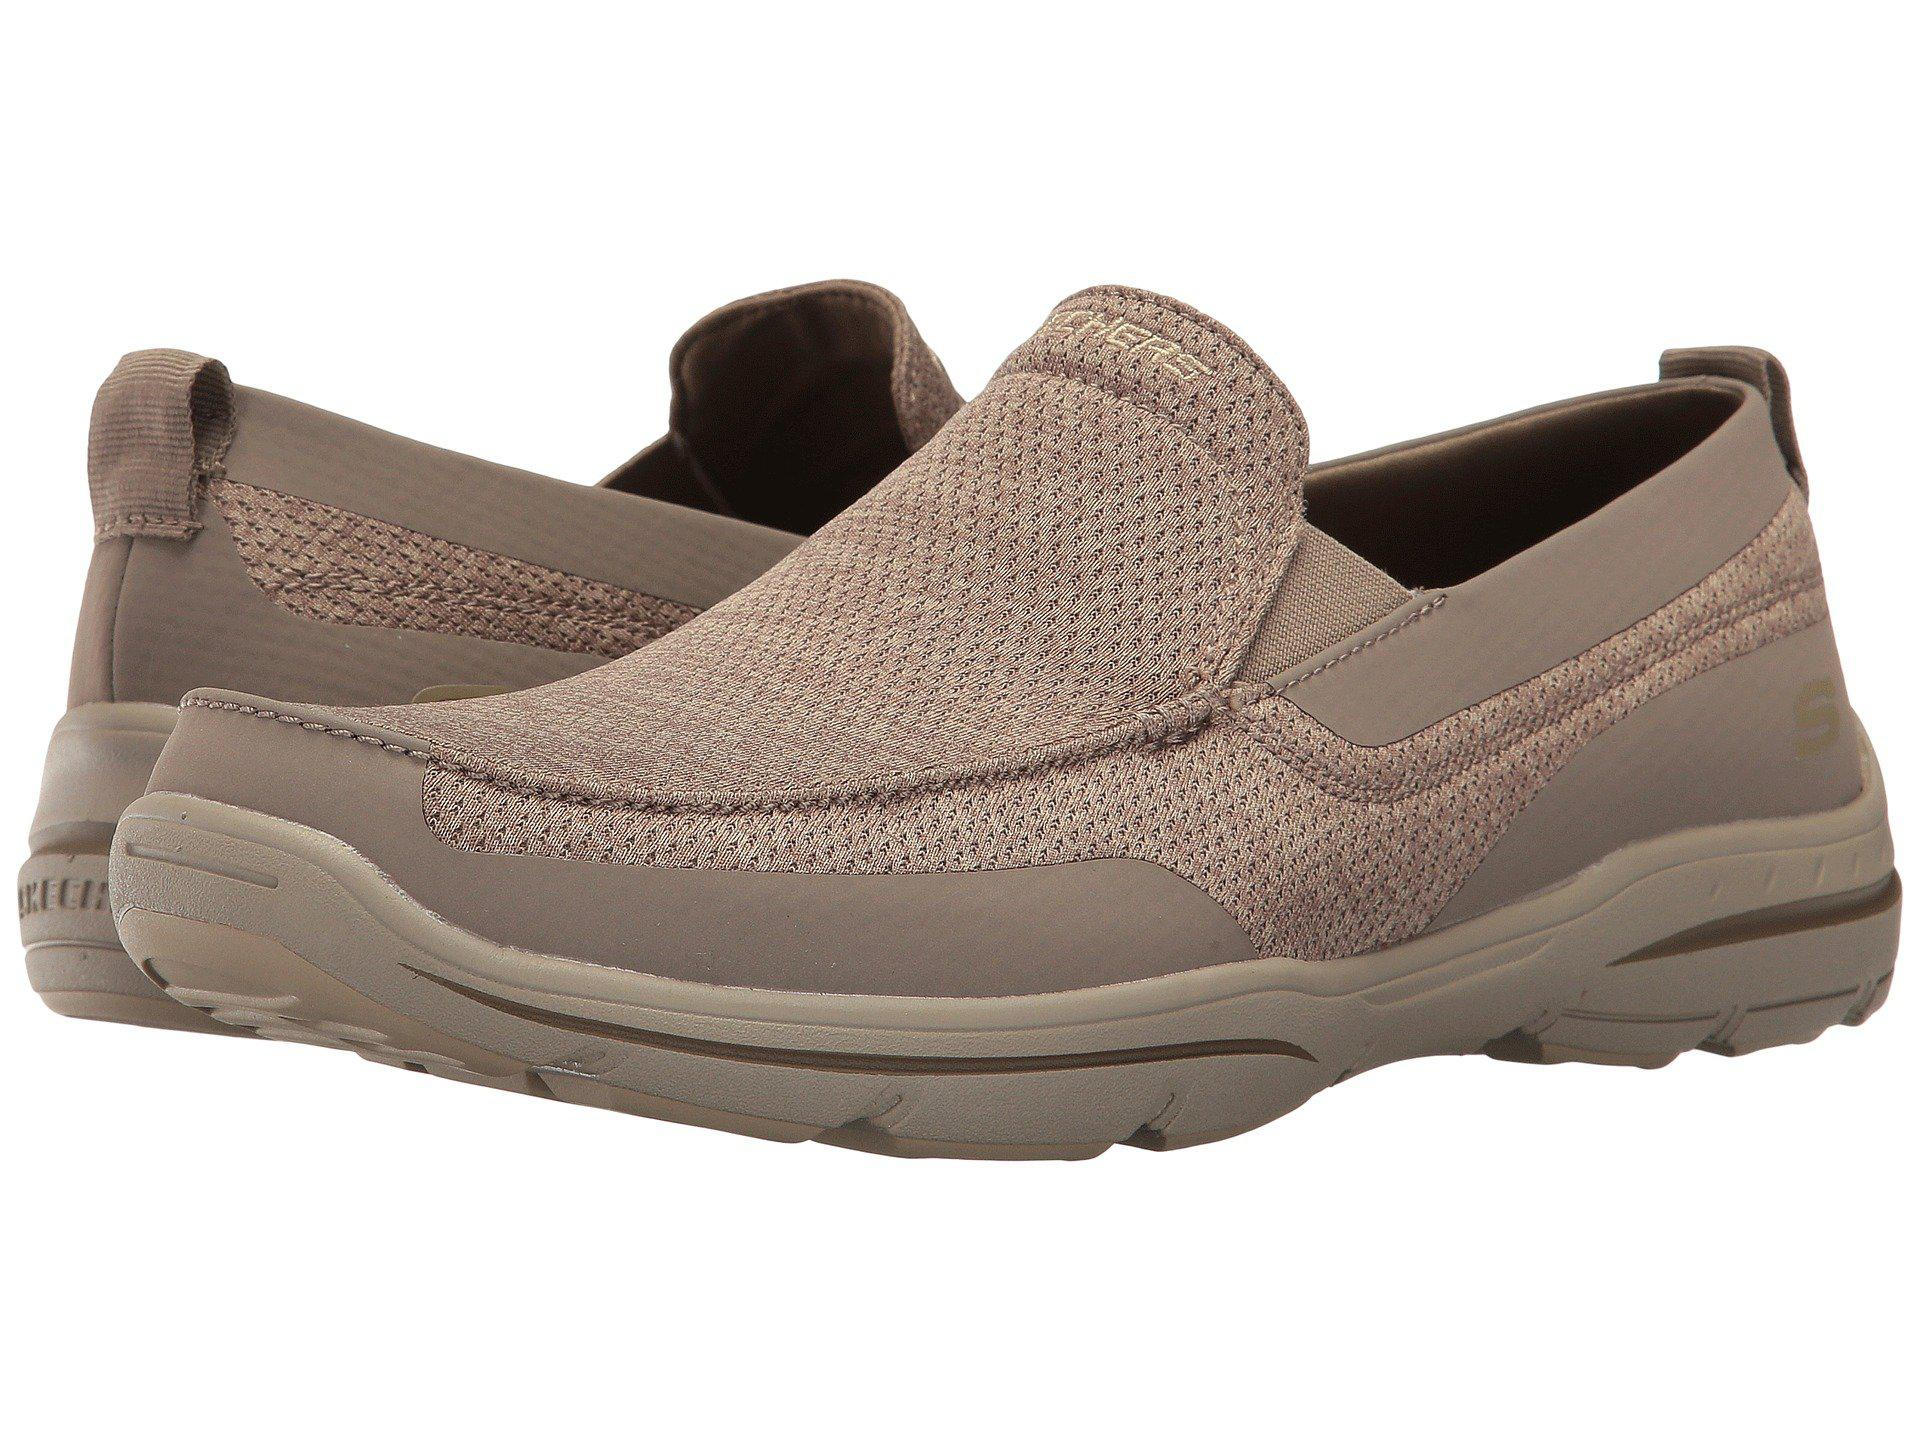 e107c78a69e5 Lyst - Skechers Relaxed Fit®  Harper - Moven in Brown for Men